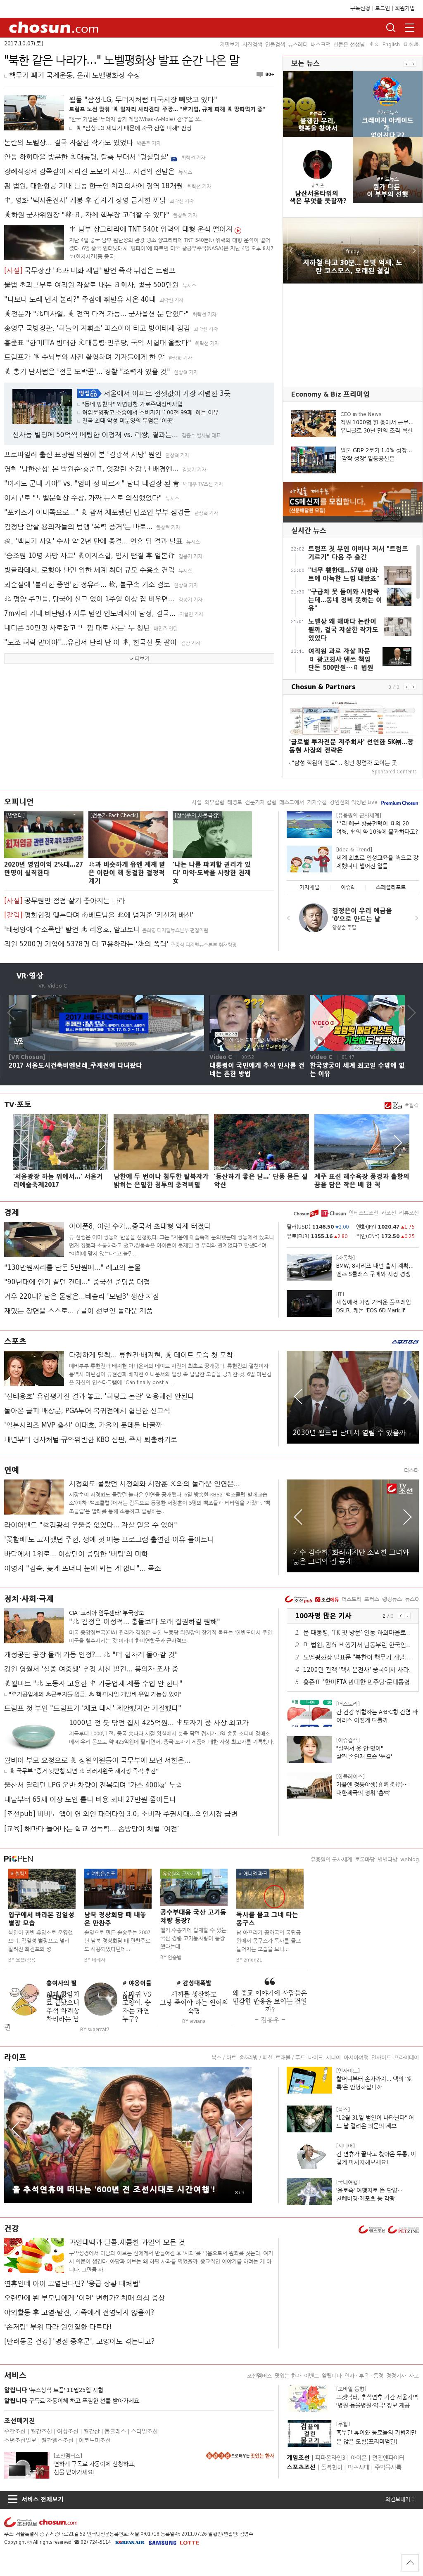 chosun.com at Friday Oct. 6, 2017, 10:02 p.m. UTC